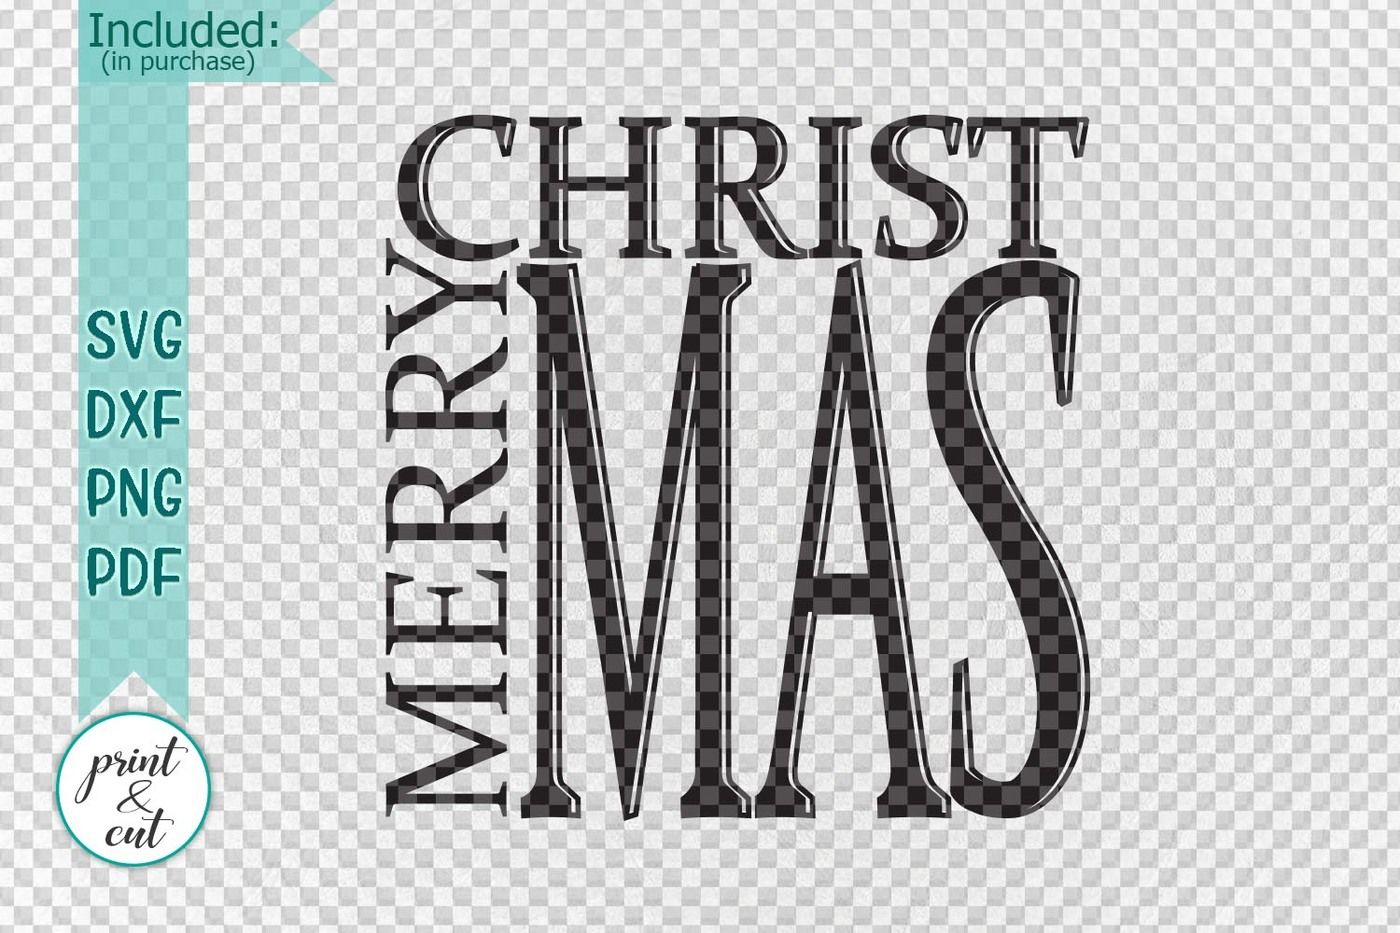 Merry Christmas Holidays Vintage Wooden Framed Sign Cut File Svg By Kartcreation Thehungryjpeg Com